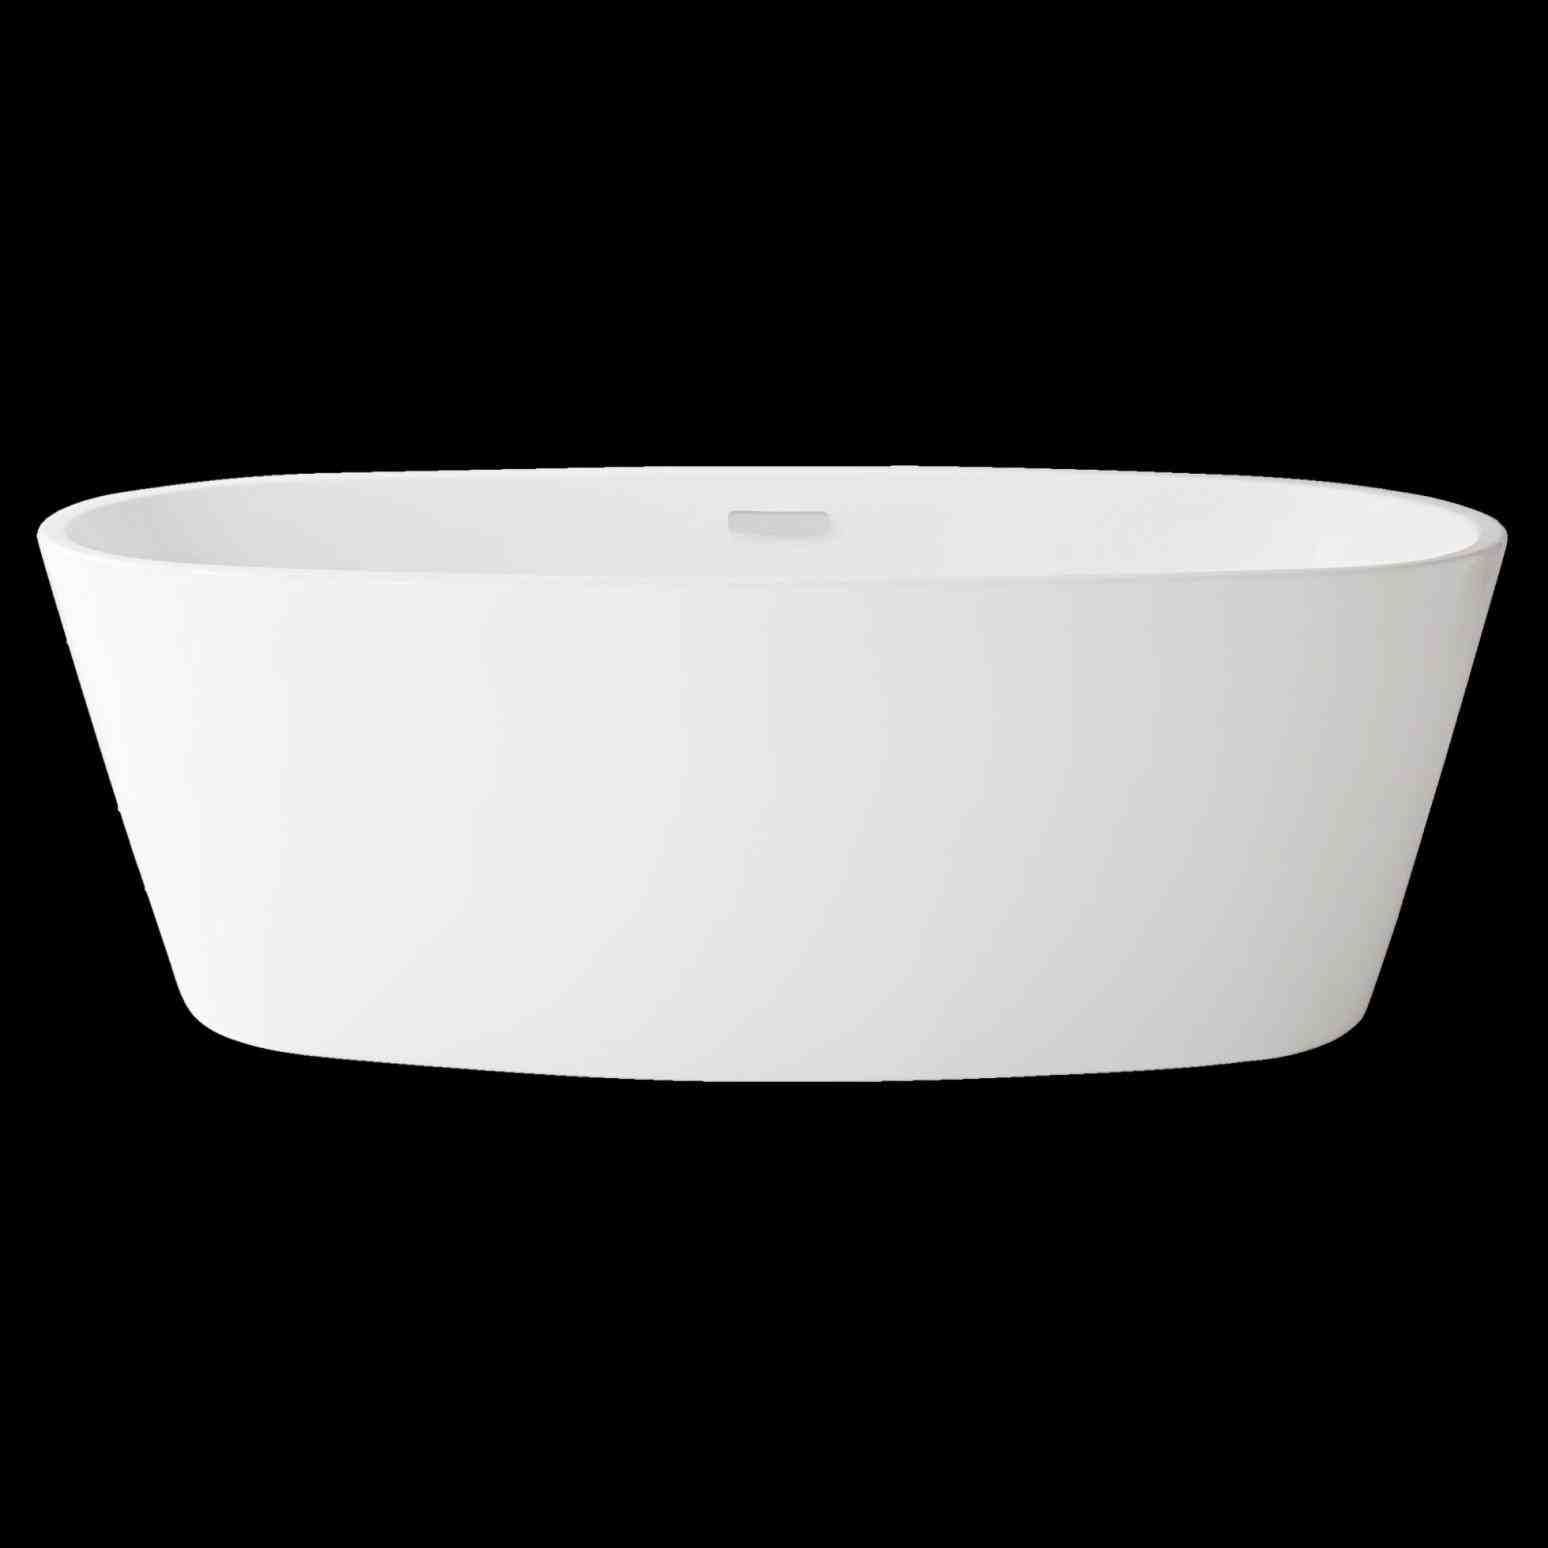 New Post Freestanding Bathtubs 60 Inches Visit Bathroomremodelideassclub